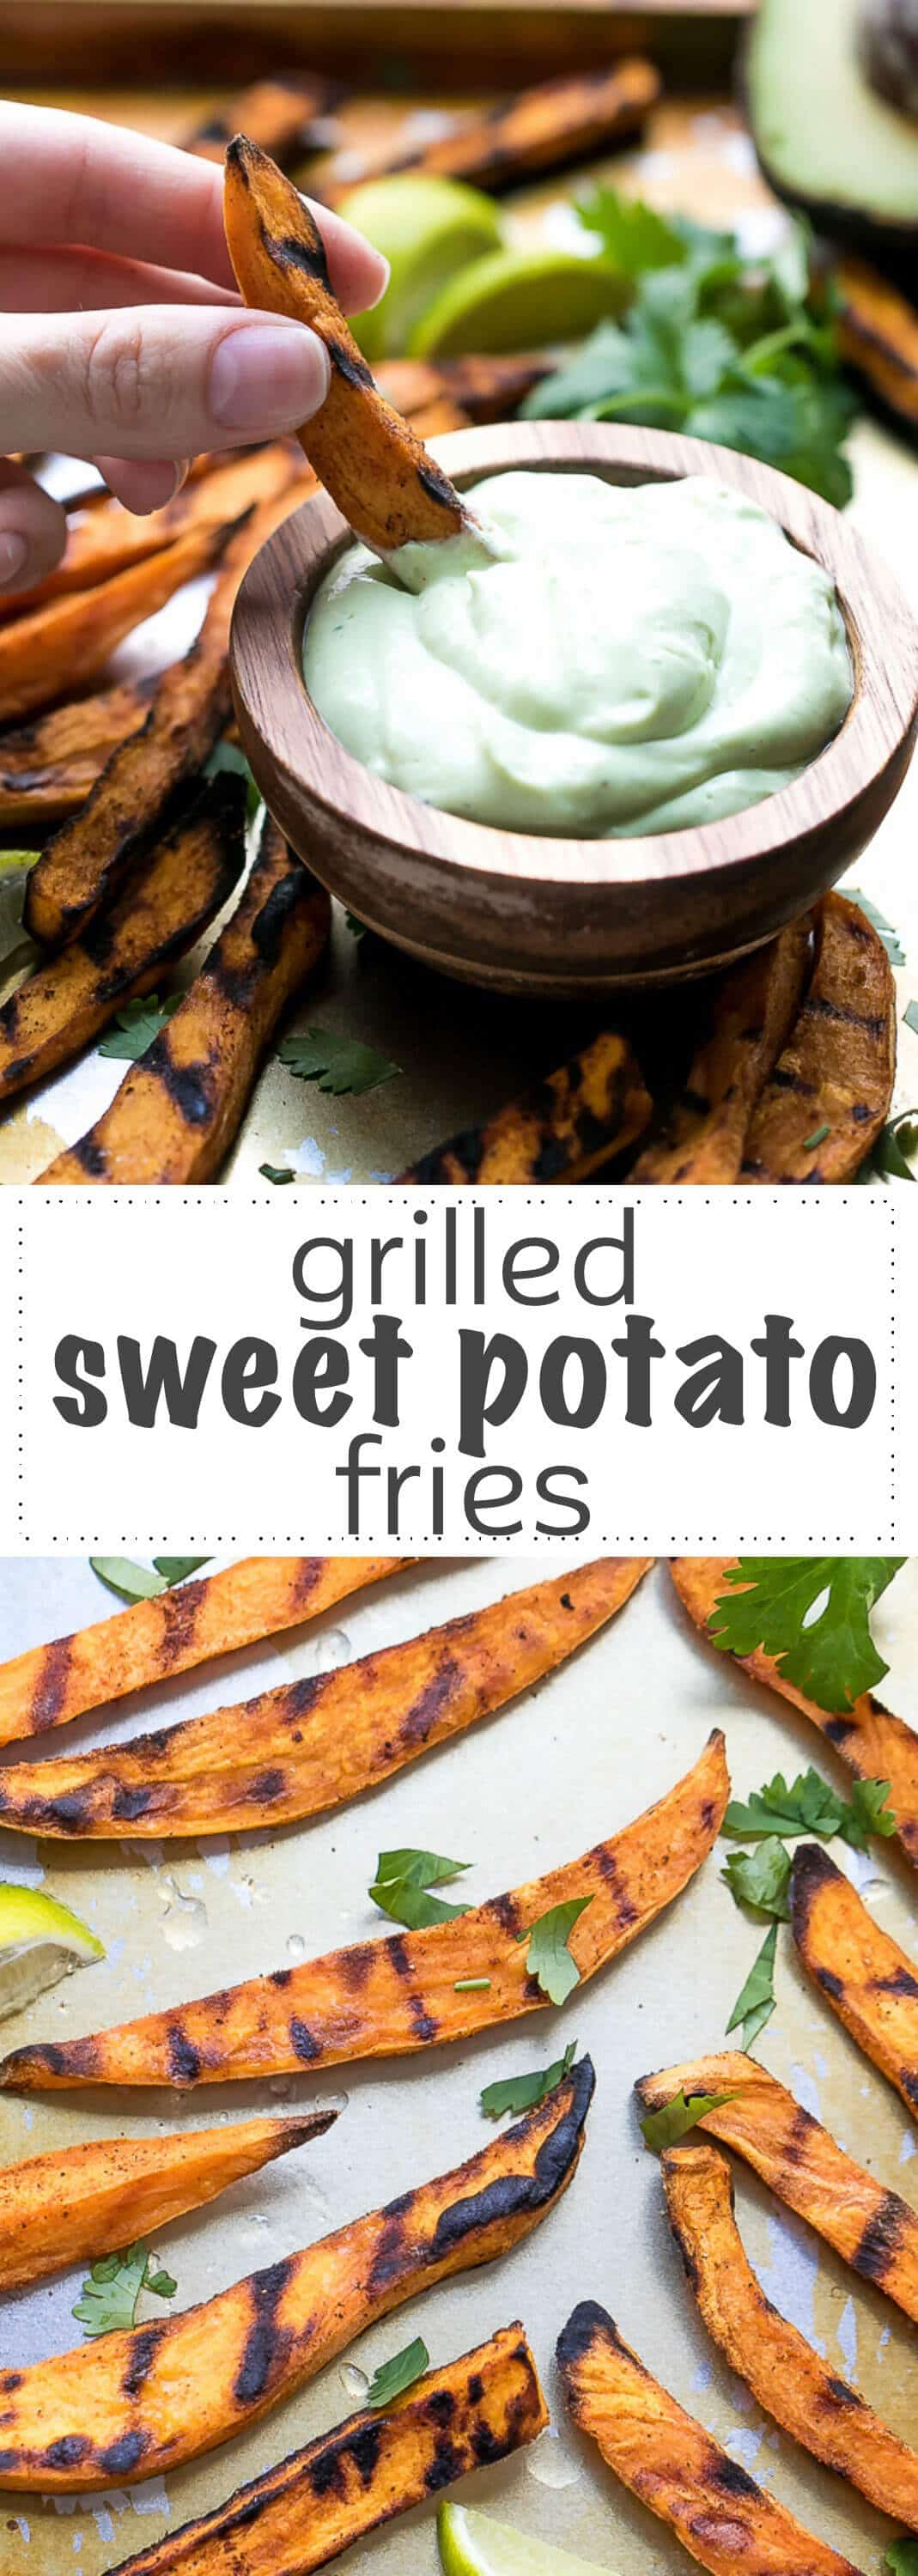 How To Grill Sweet Potato Fries - perfectly cooked with dark grill marks on the outside, these sweet potato fries are made exclusively on the grill, no boiling requited. Great for an appetizer or a grilling party side dish.